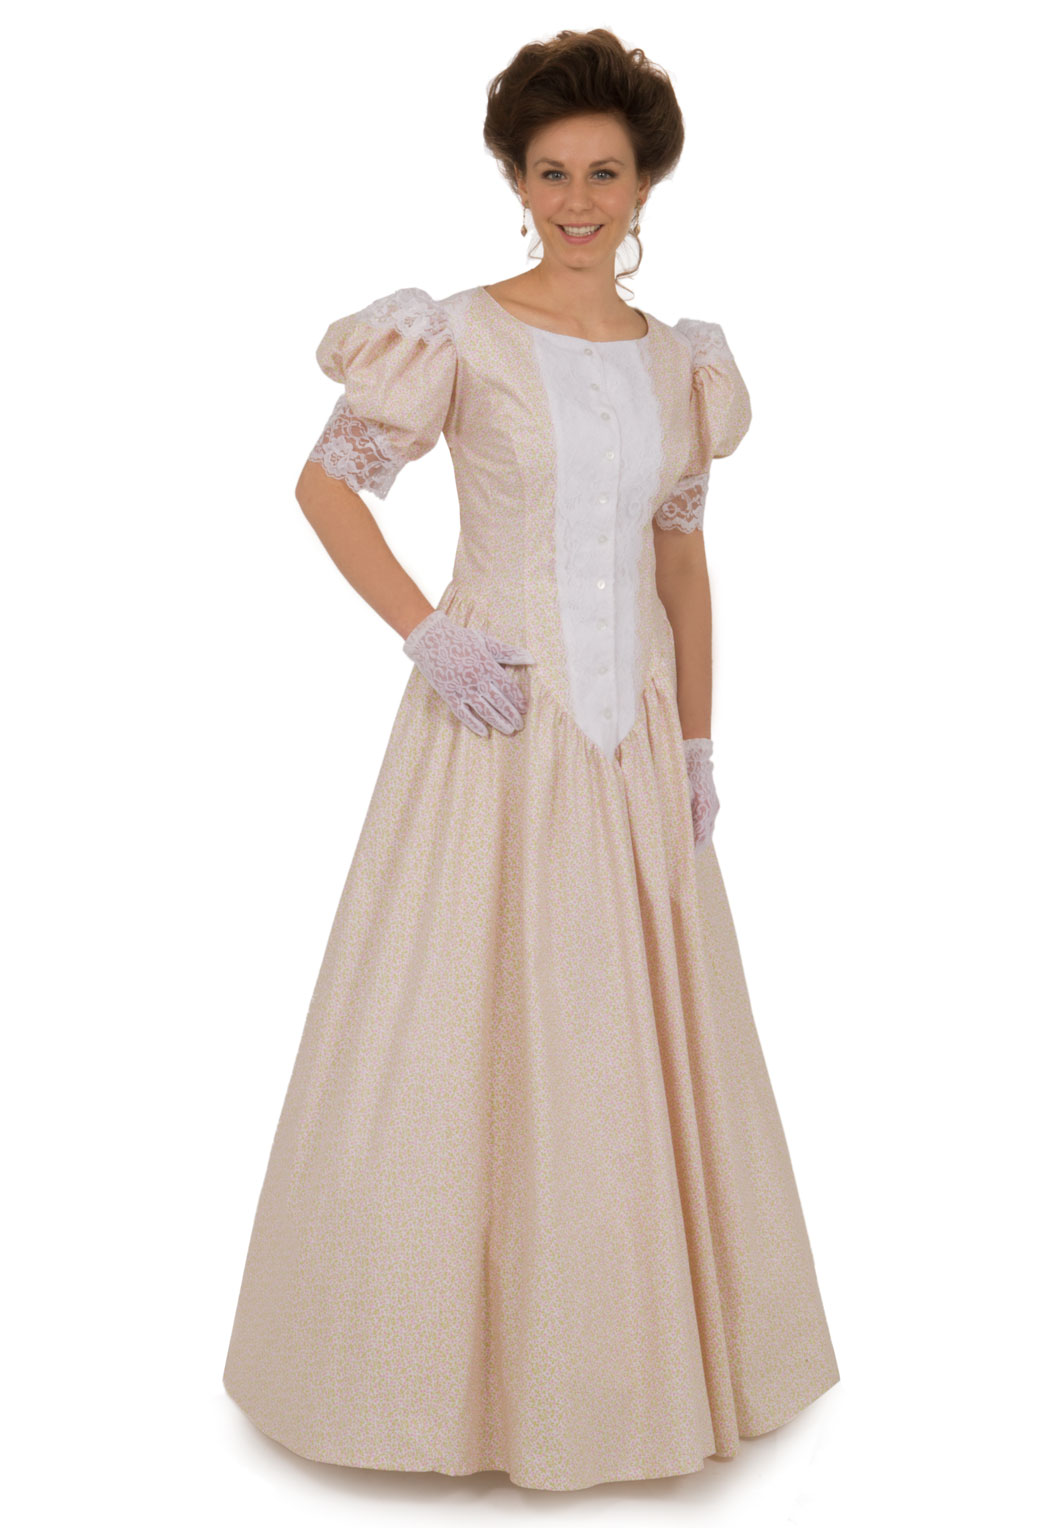 Classic print victorian dress recollections for Old west wedding dresses